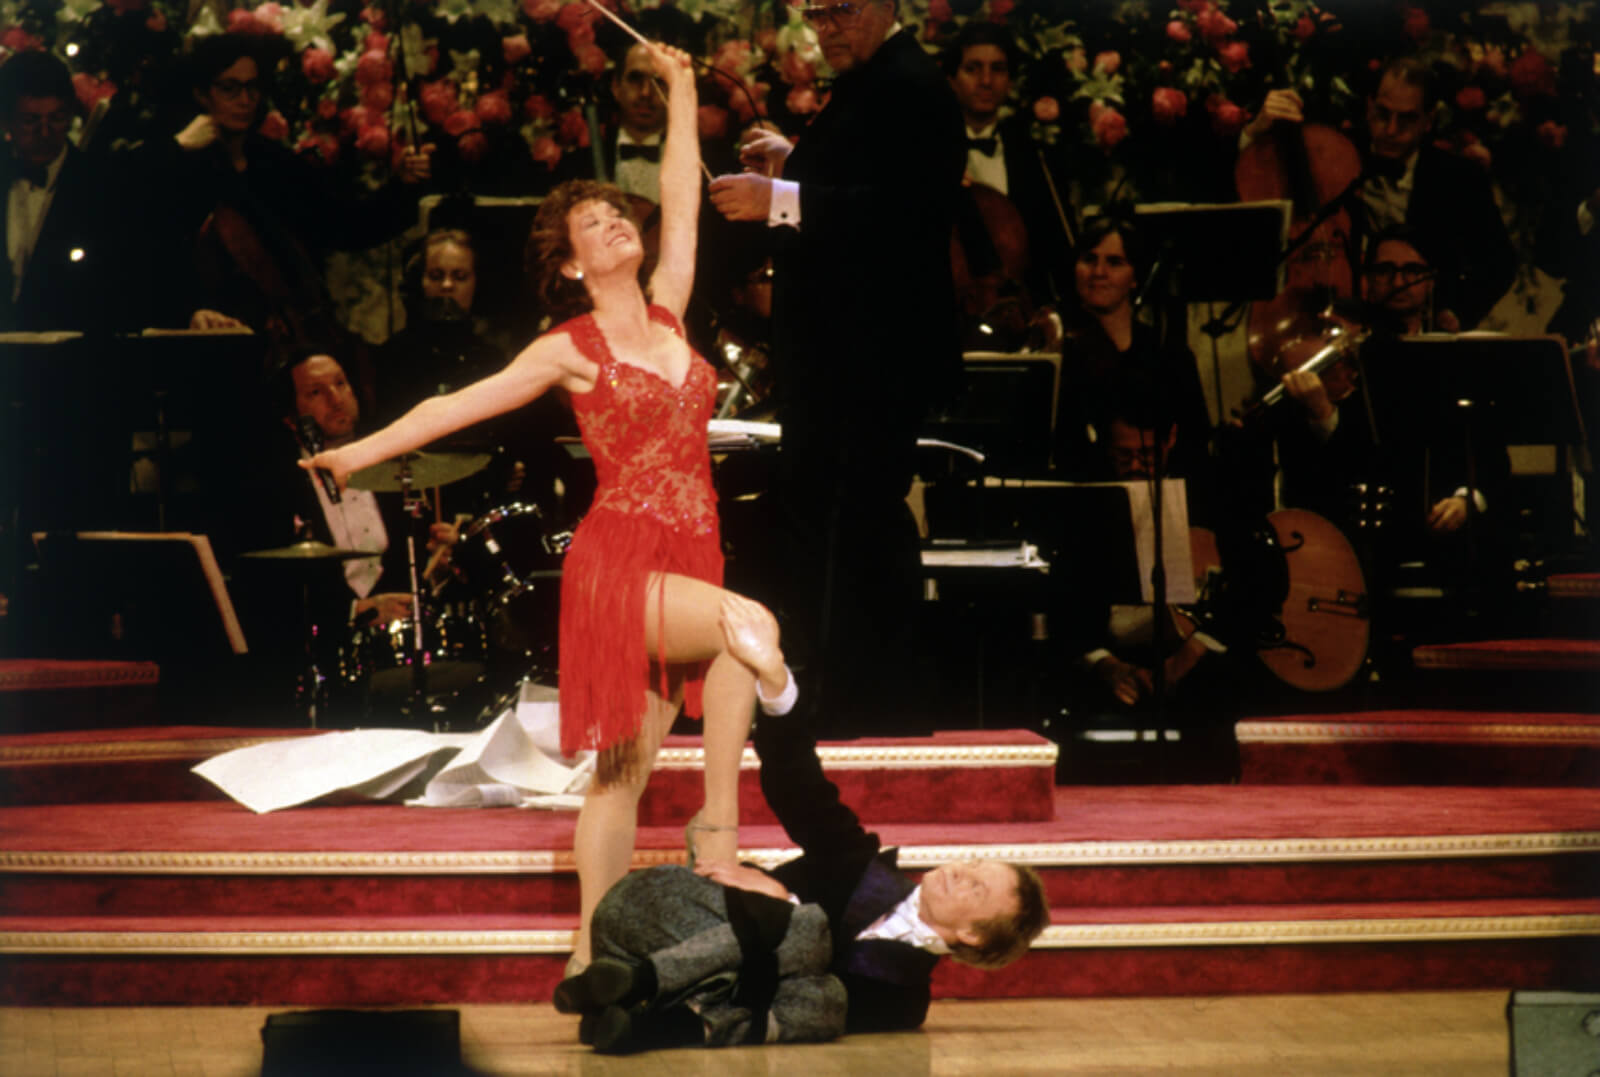 """Karen Ziemba and Bill Irwin performing """"Sooner or Later"""". She in standing over him in a red dress with one leg on him. He is laying in a cradle post on the ground in a suit."""